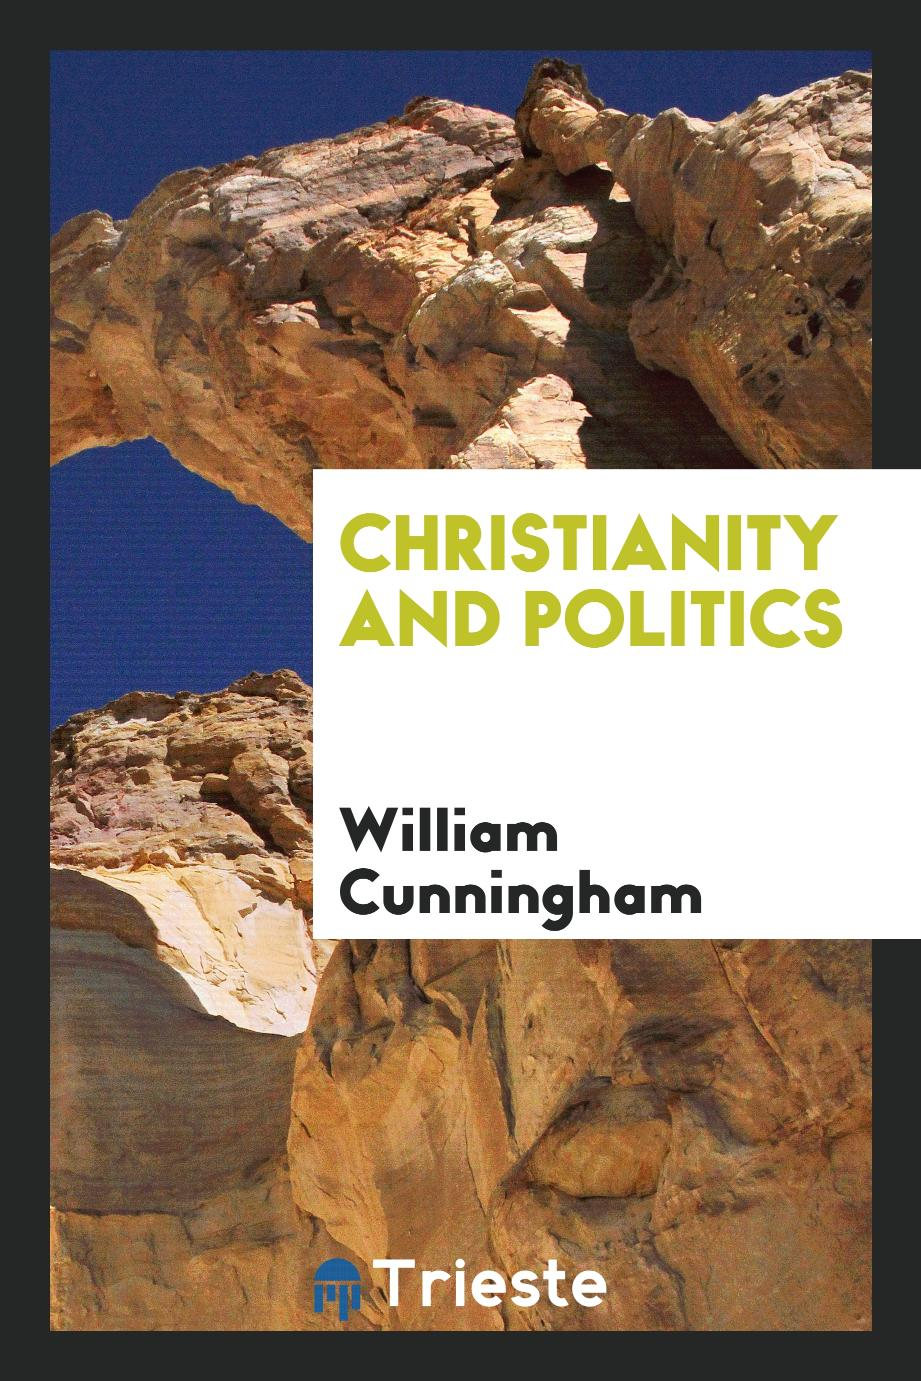 Christianity and politics